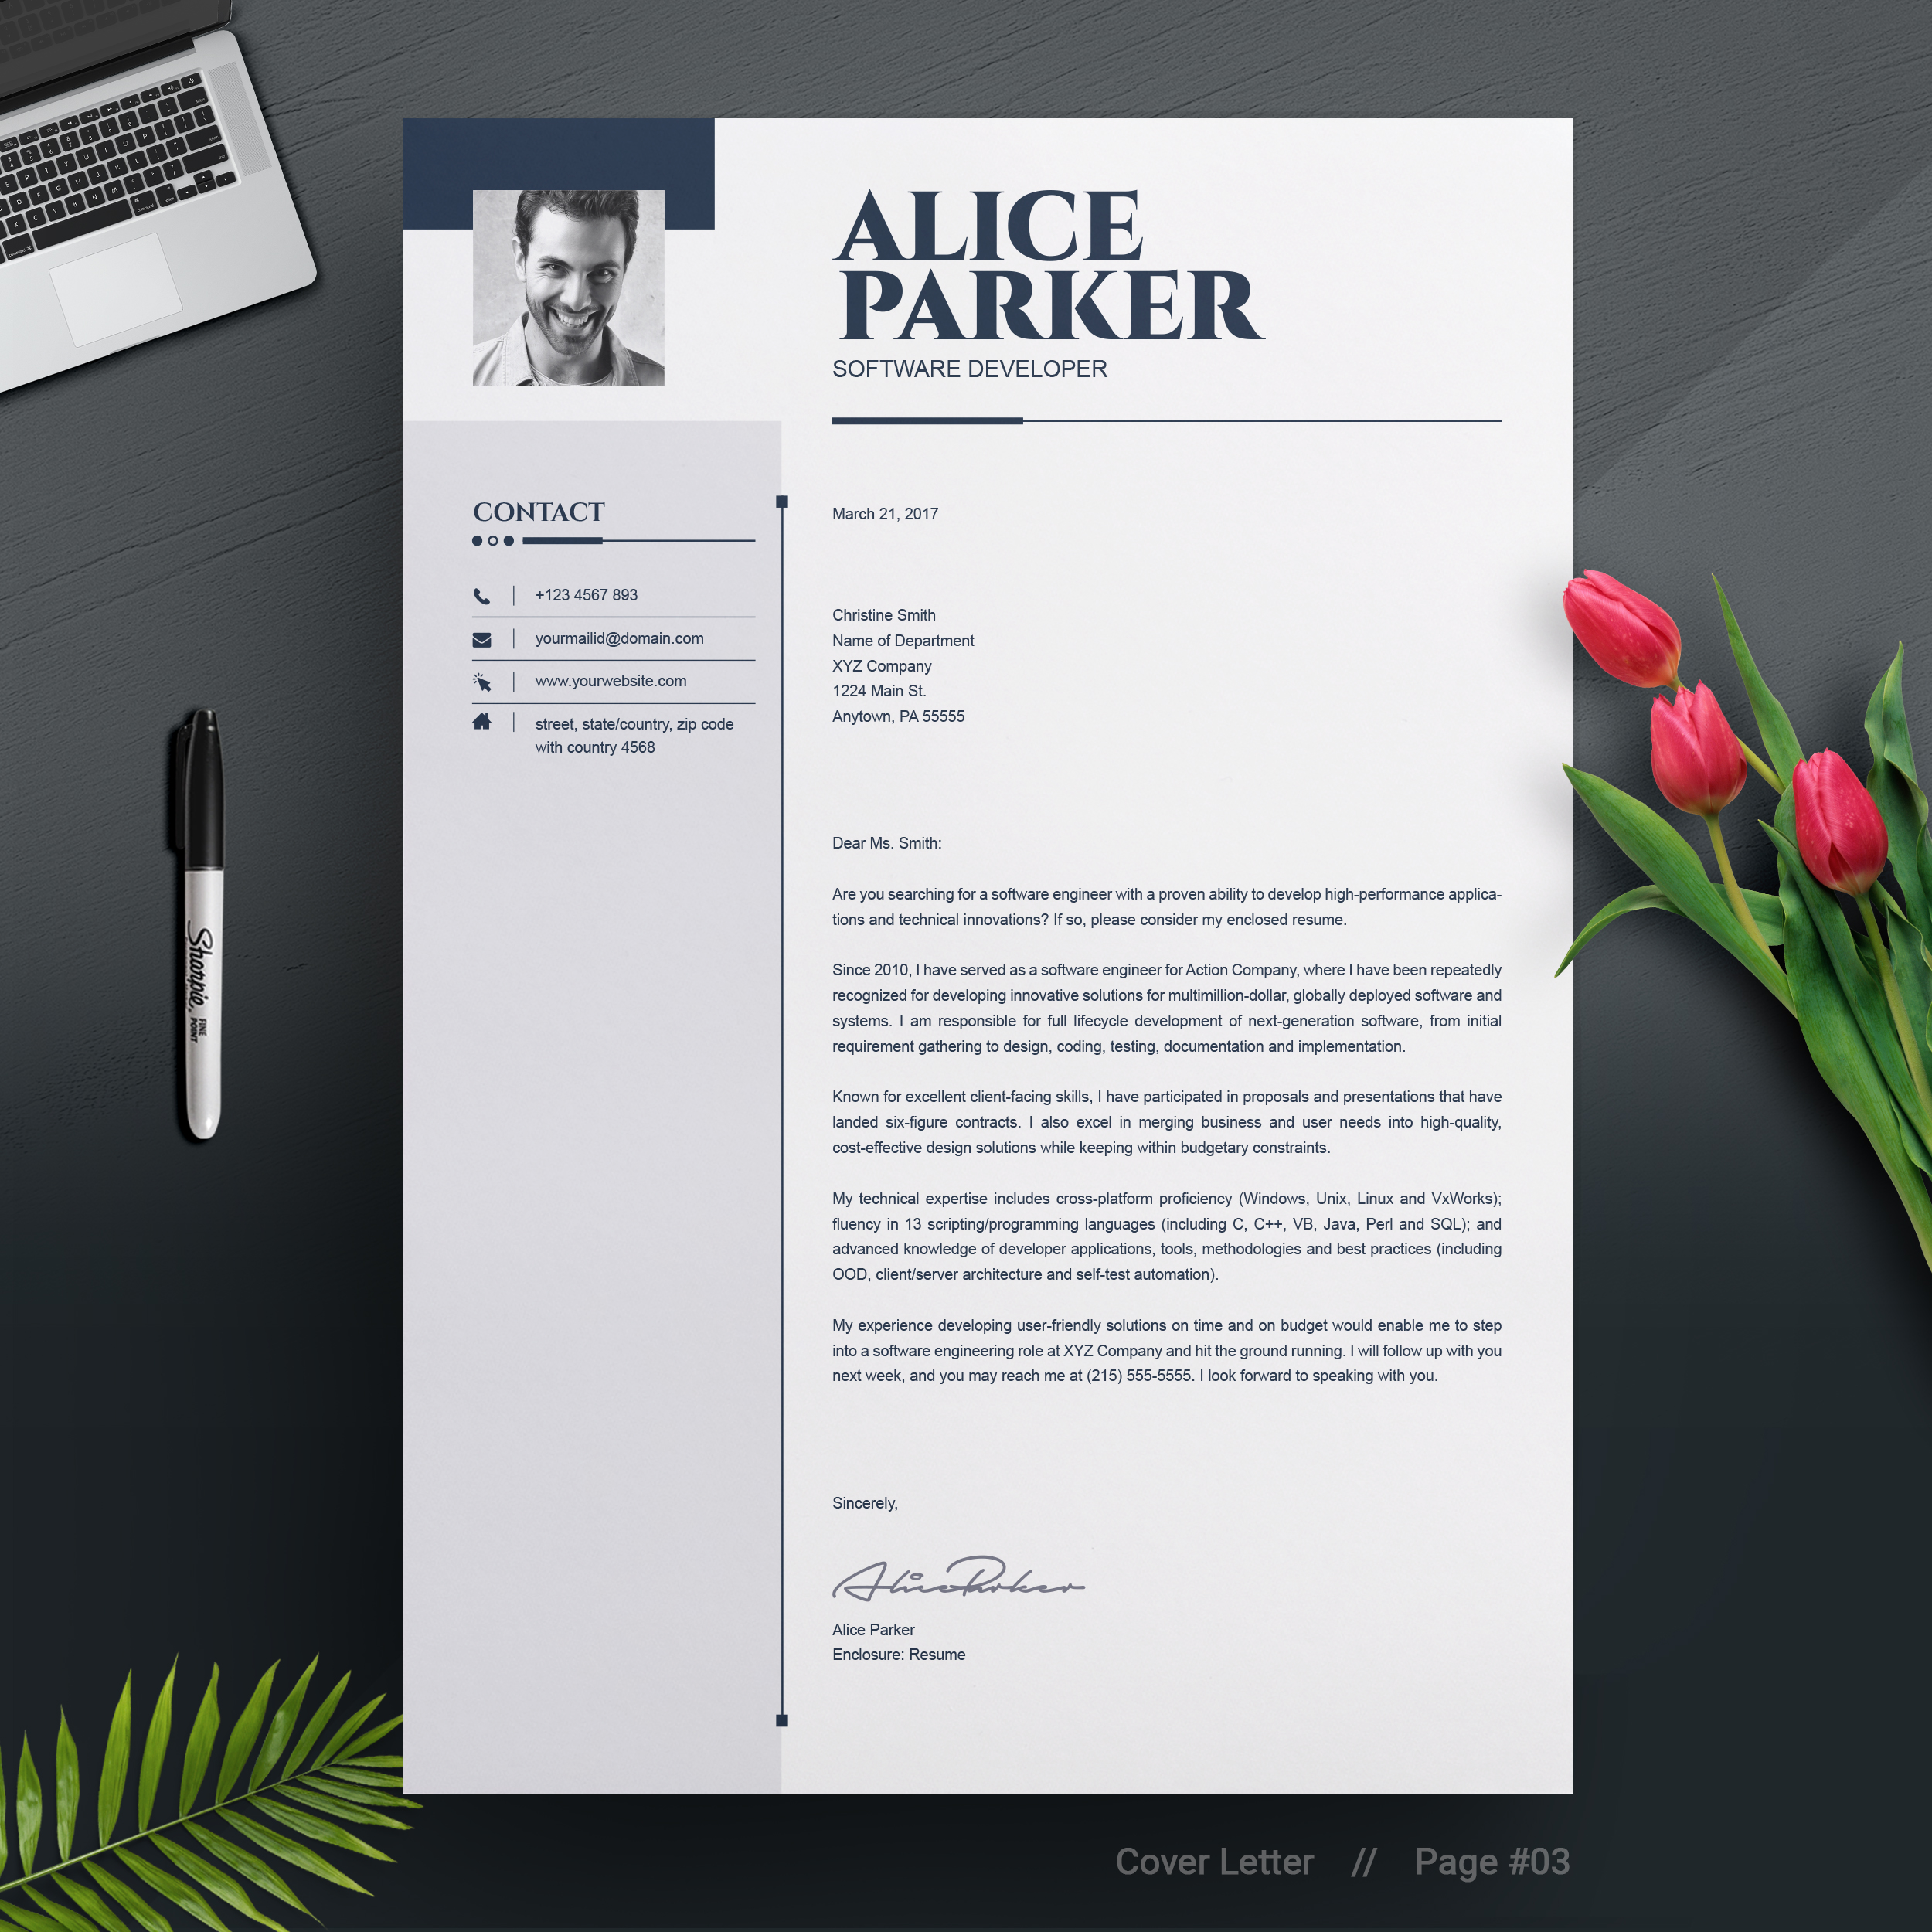 Do You Staple A Resume And Cover Letter from pixelify.nyc3.cdn.digitaloceanspaces.com